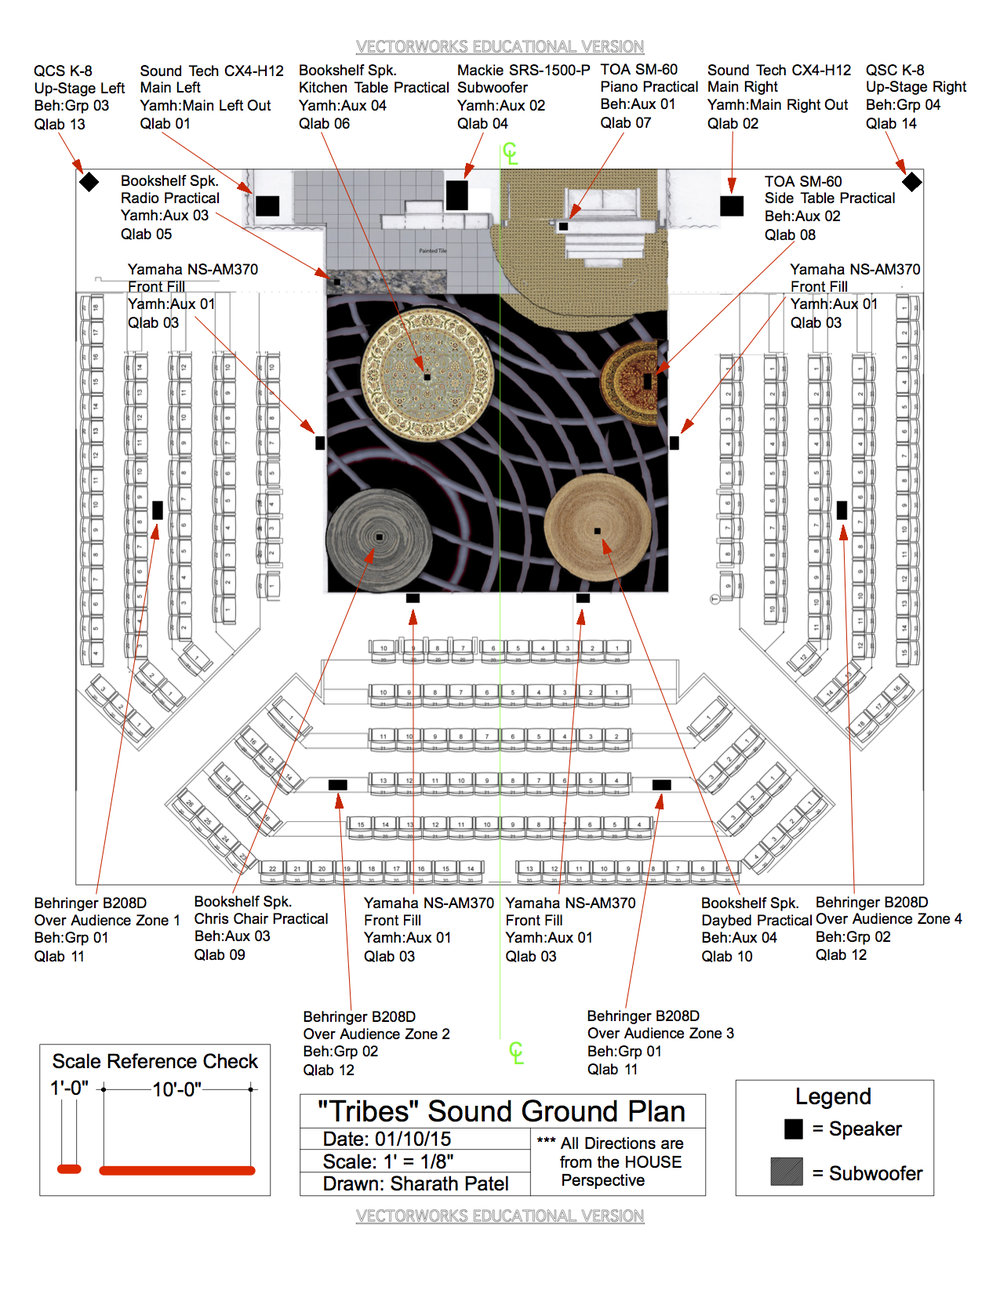 03 Tribes Sound Ground Plan 1-10-15 Digital v2.jpg